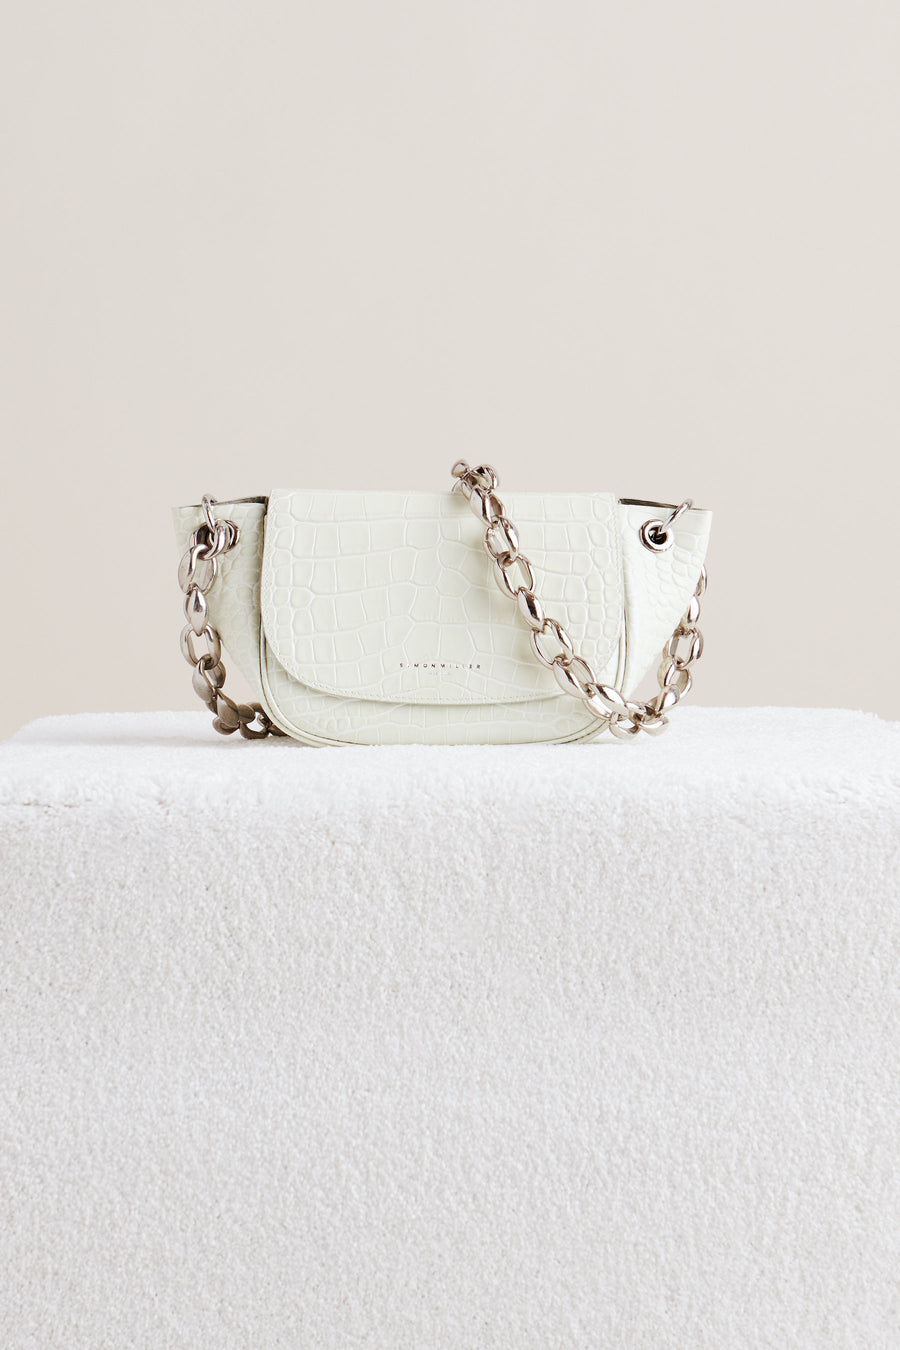 Bend Bag in White Croc